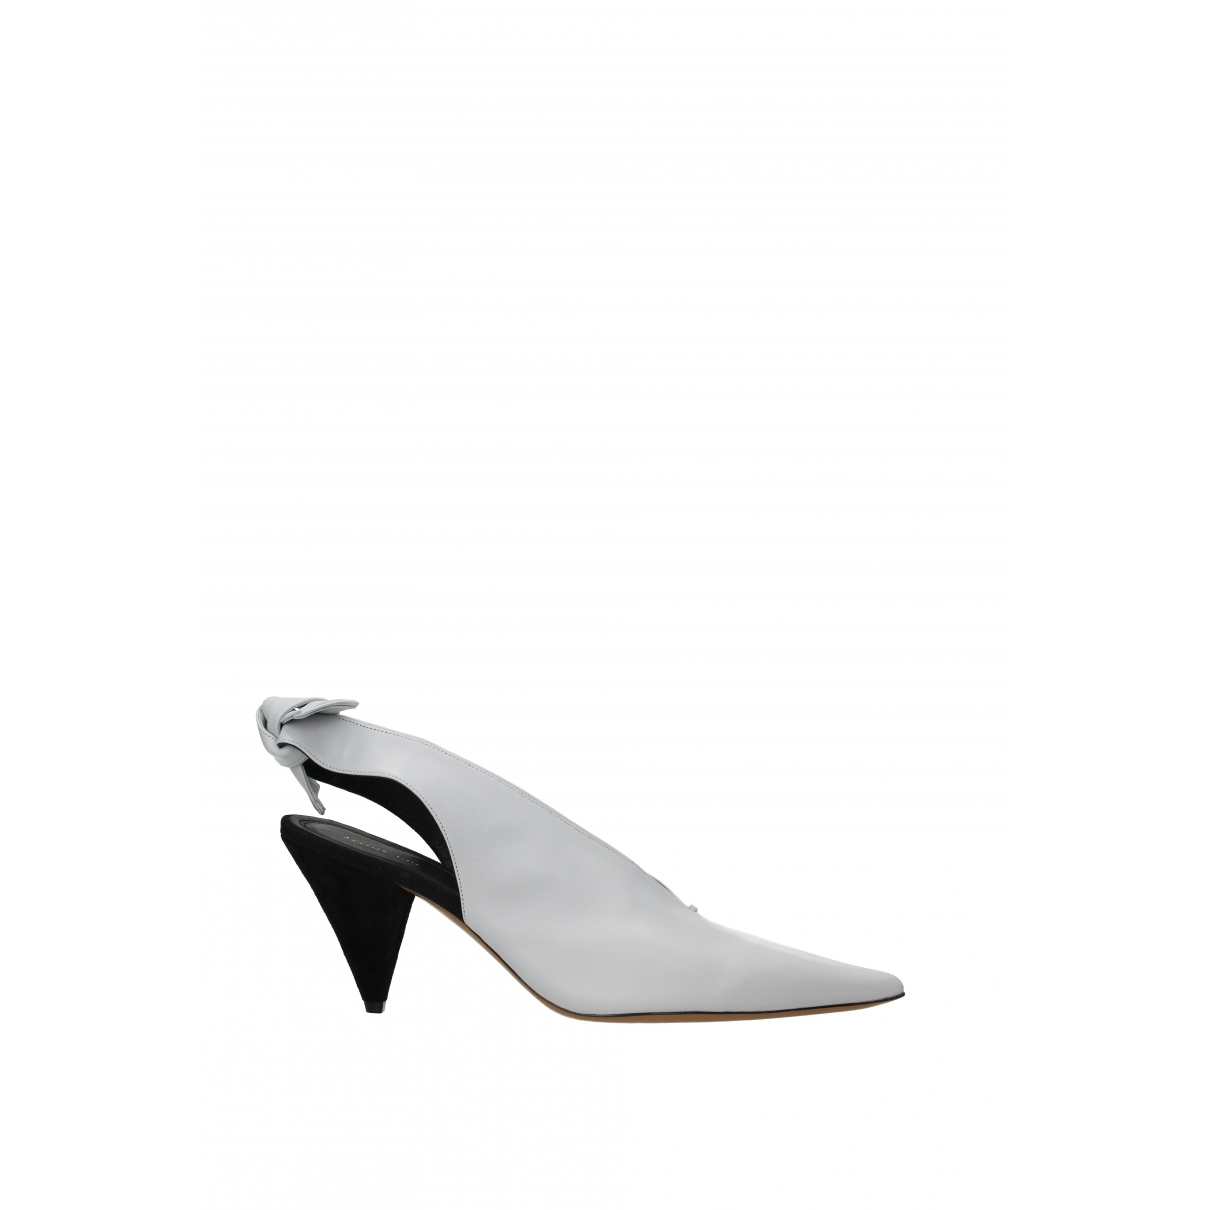 Celine \N White Leather Heels for Women 40 EU